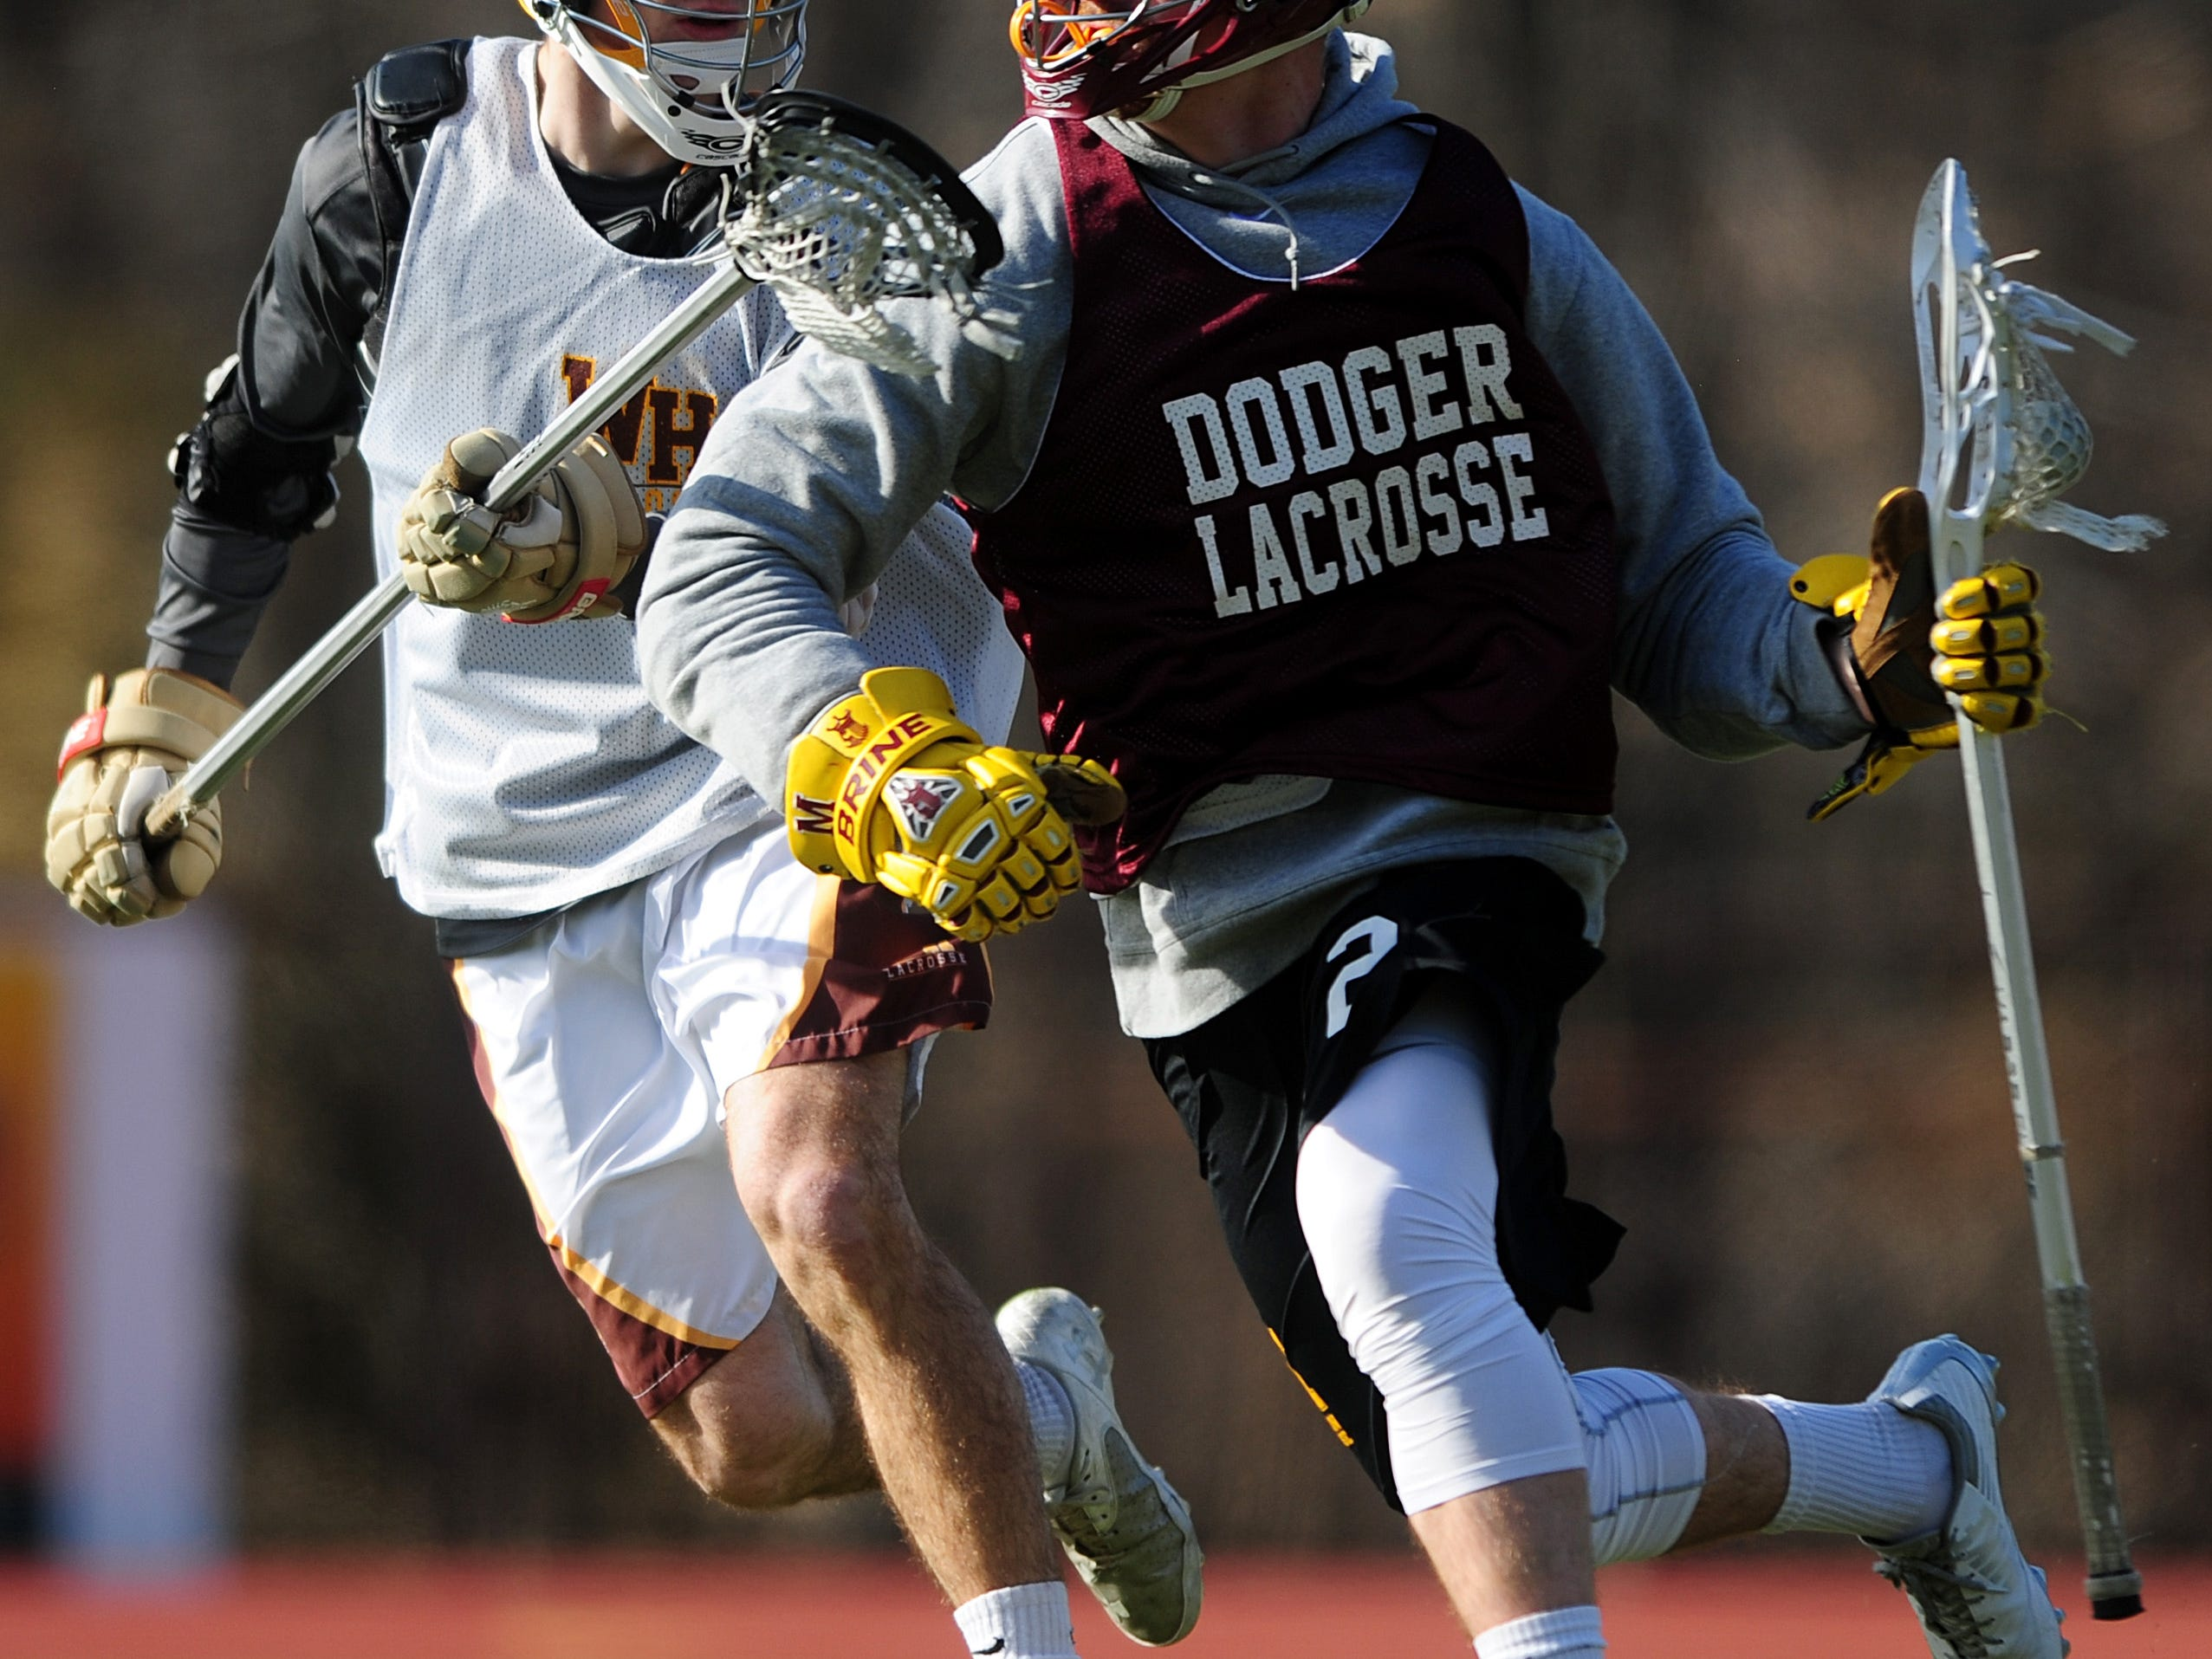 Madison's Vince Sapio (right) controls the ball away from Watchung Hills' John LaGudice during a scrimmage on March 19 at Watchung Hills.